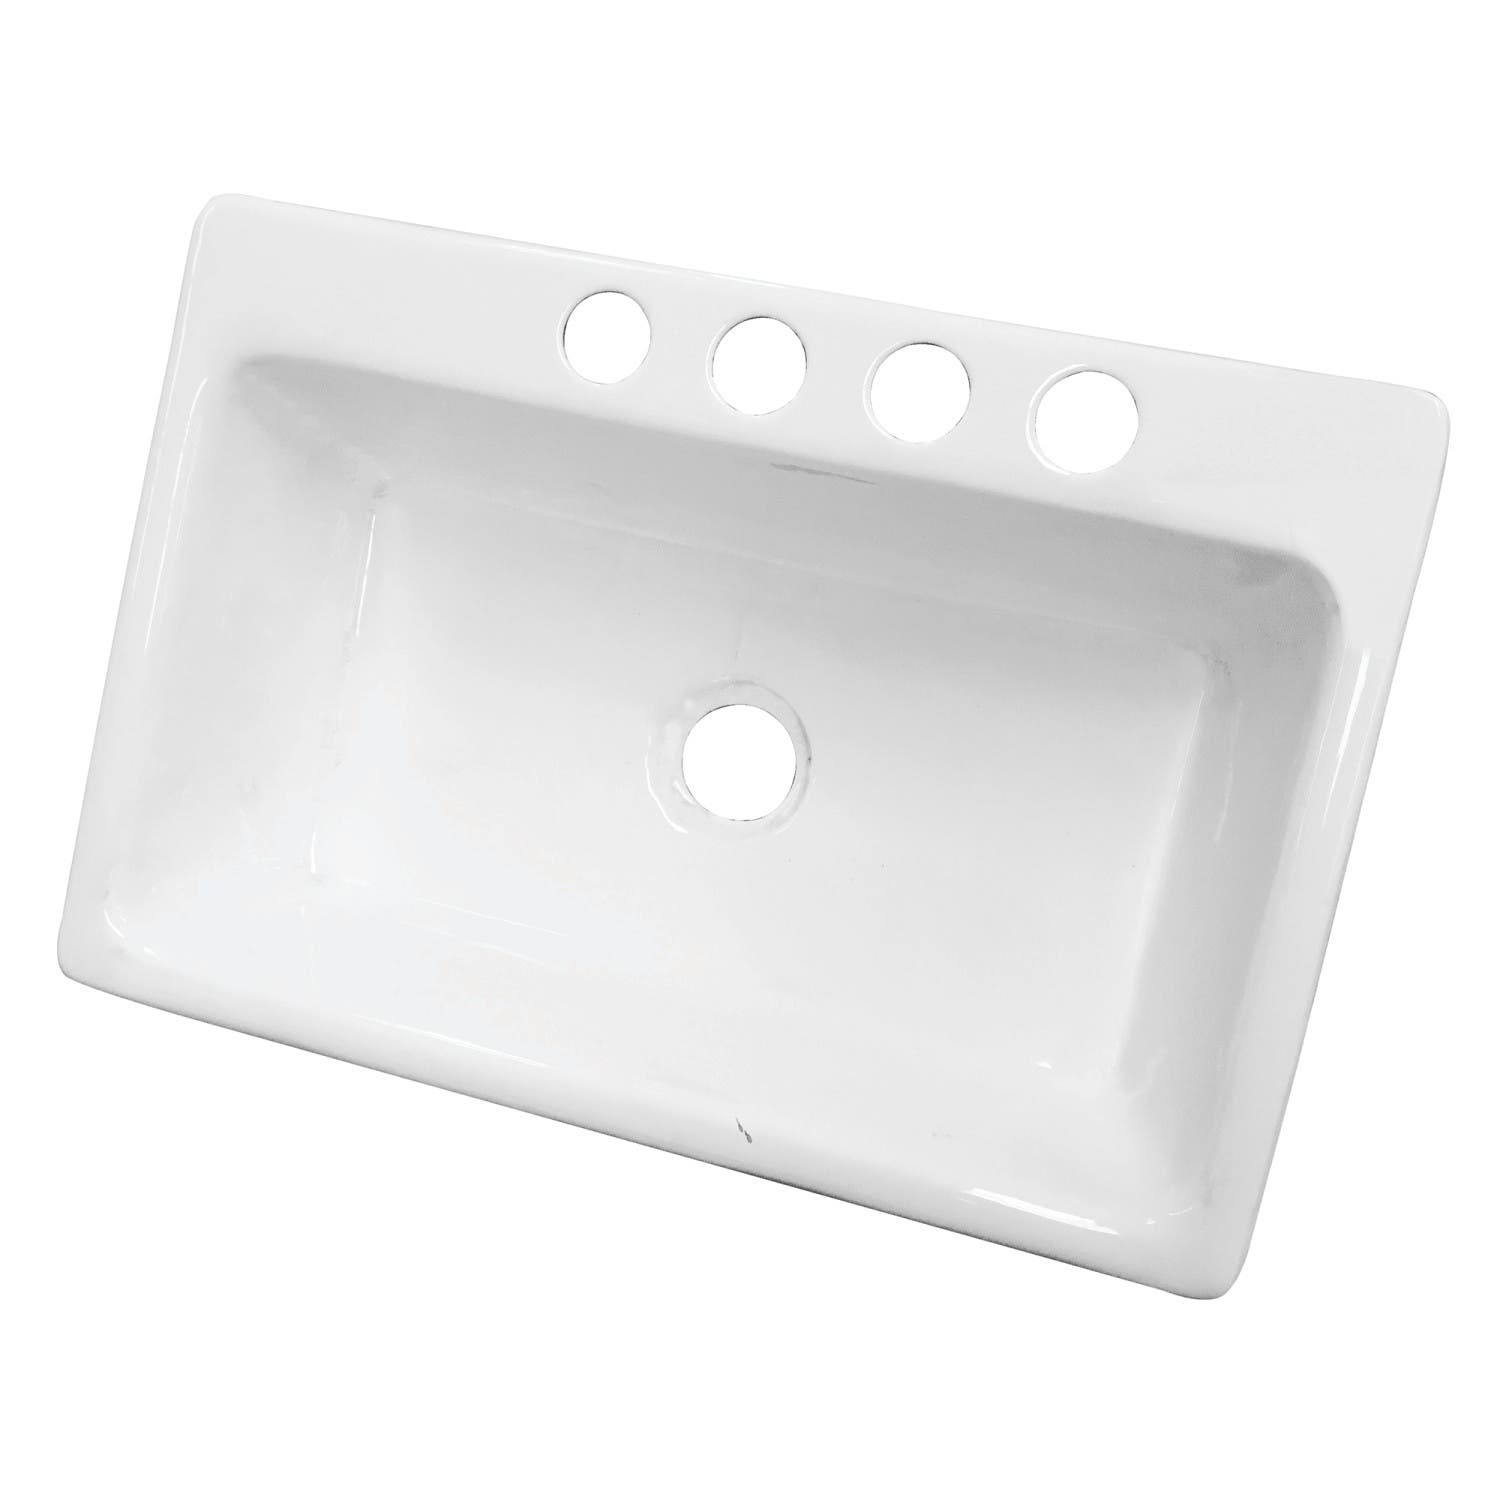 White Undermount Kitchen Sink Single Bowl